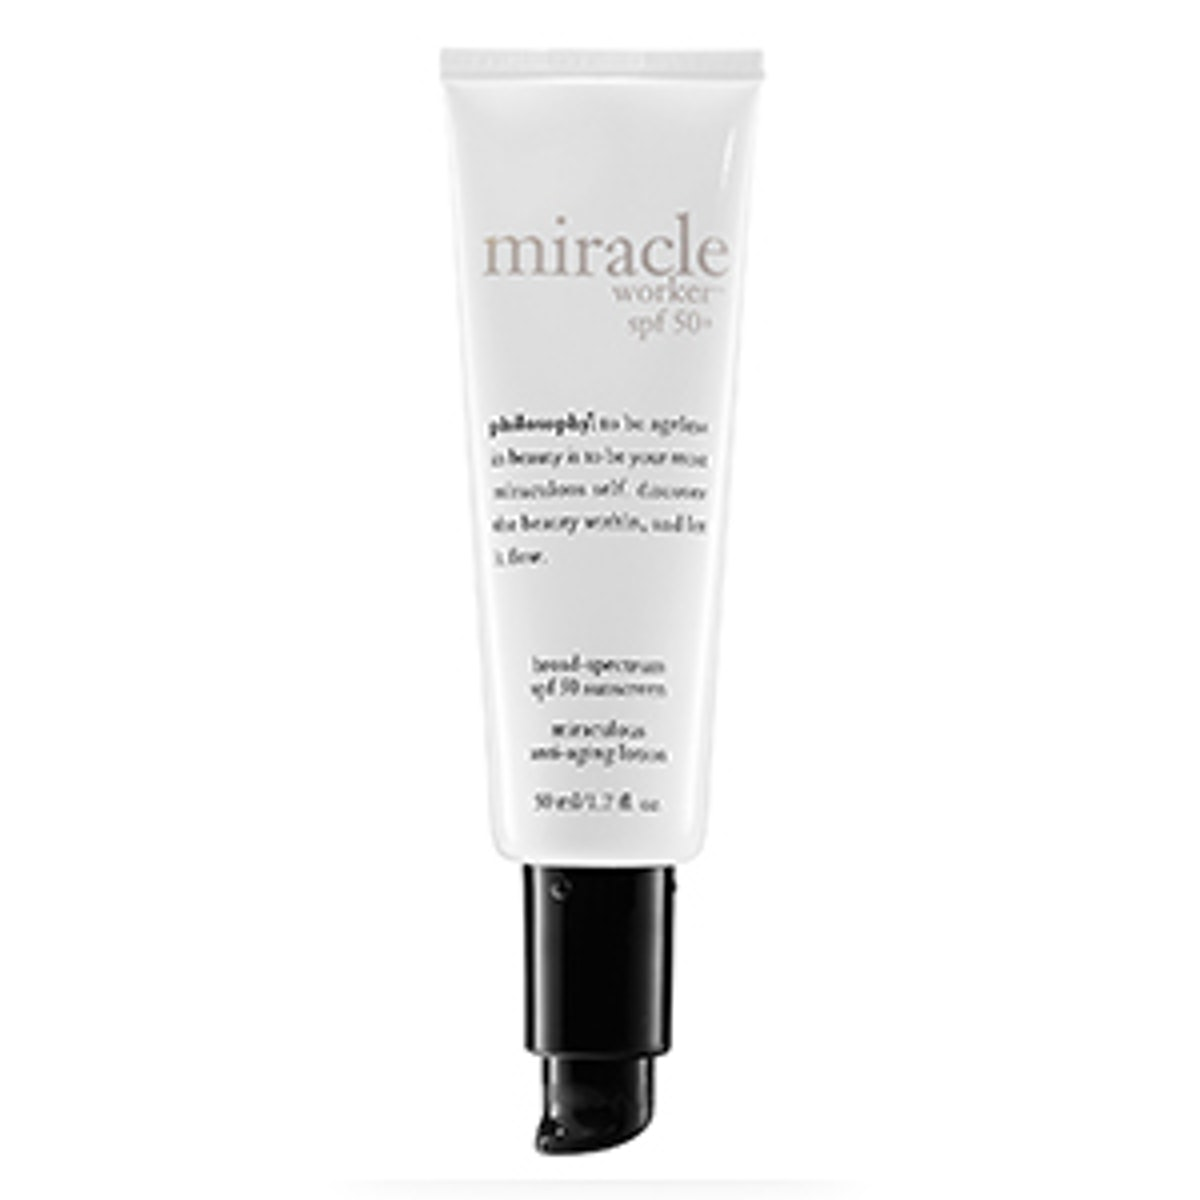 Miracle Worker SPF 50+